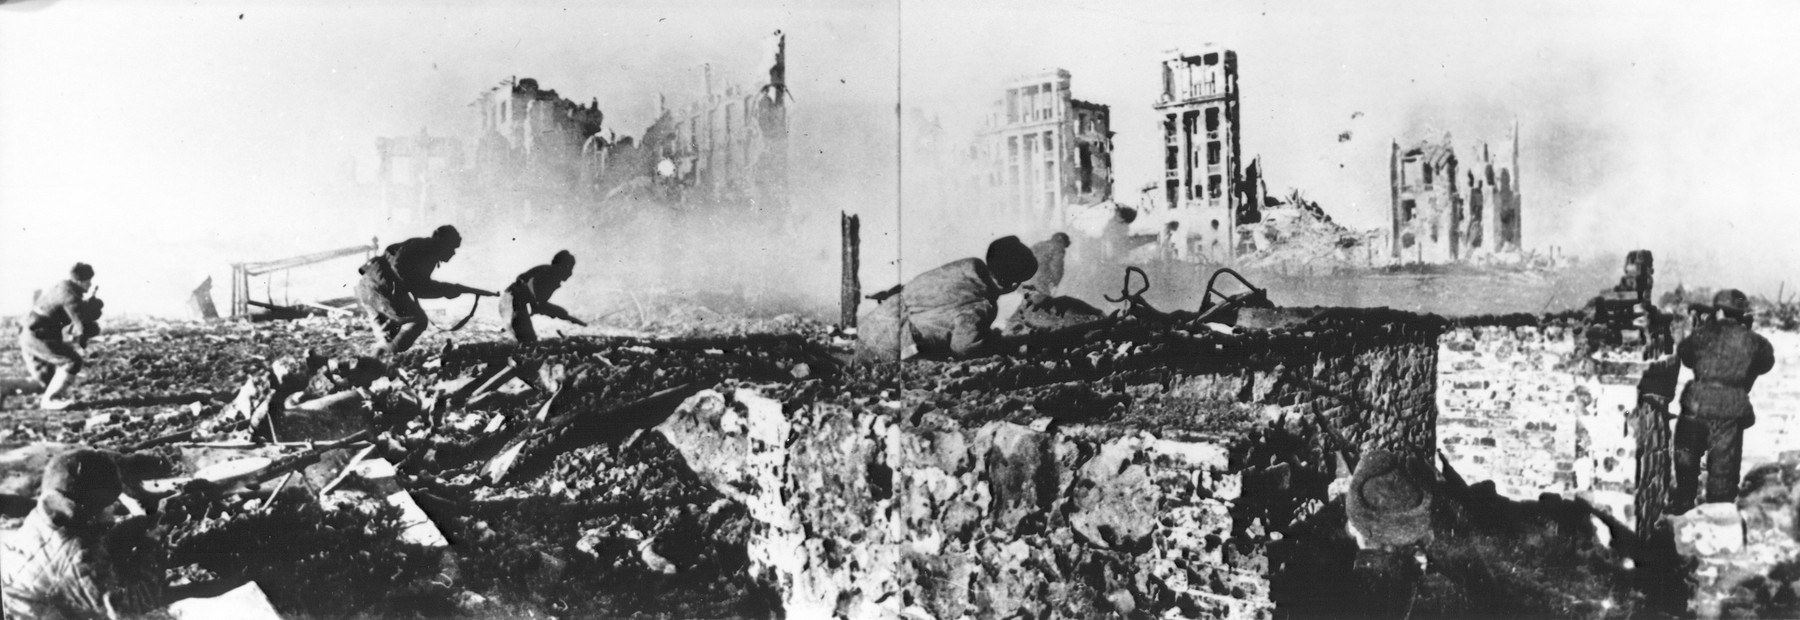 """Assault units of the 62nd Soviet army battle the Germans in Stalingrad.  Sovfoto caption reads: """"Assault groups of the 62nd army dislodge the Germans from house after house, basement after basement, tightening the iron ring around them."""""""